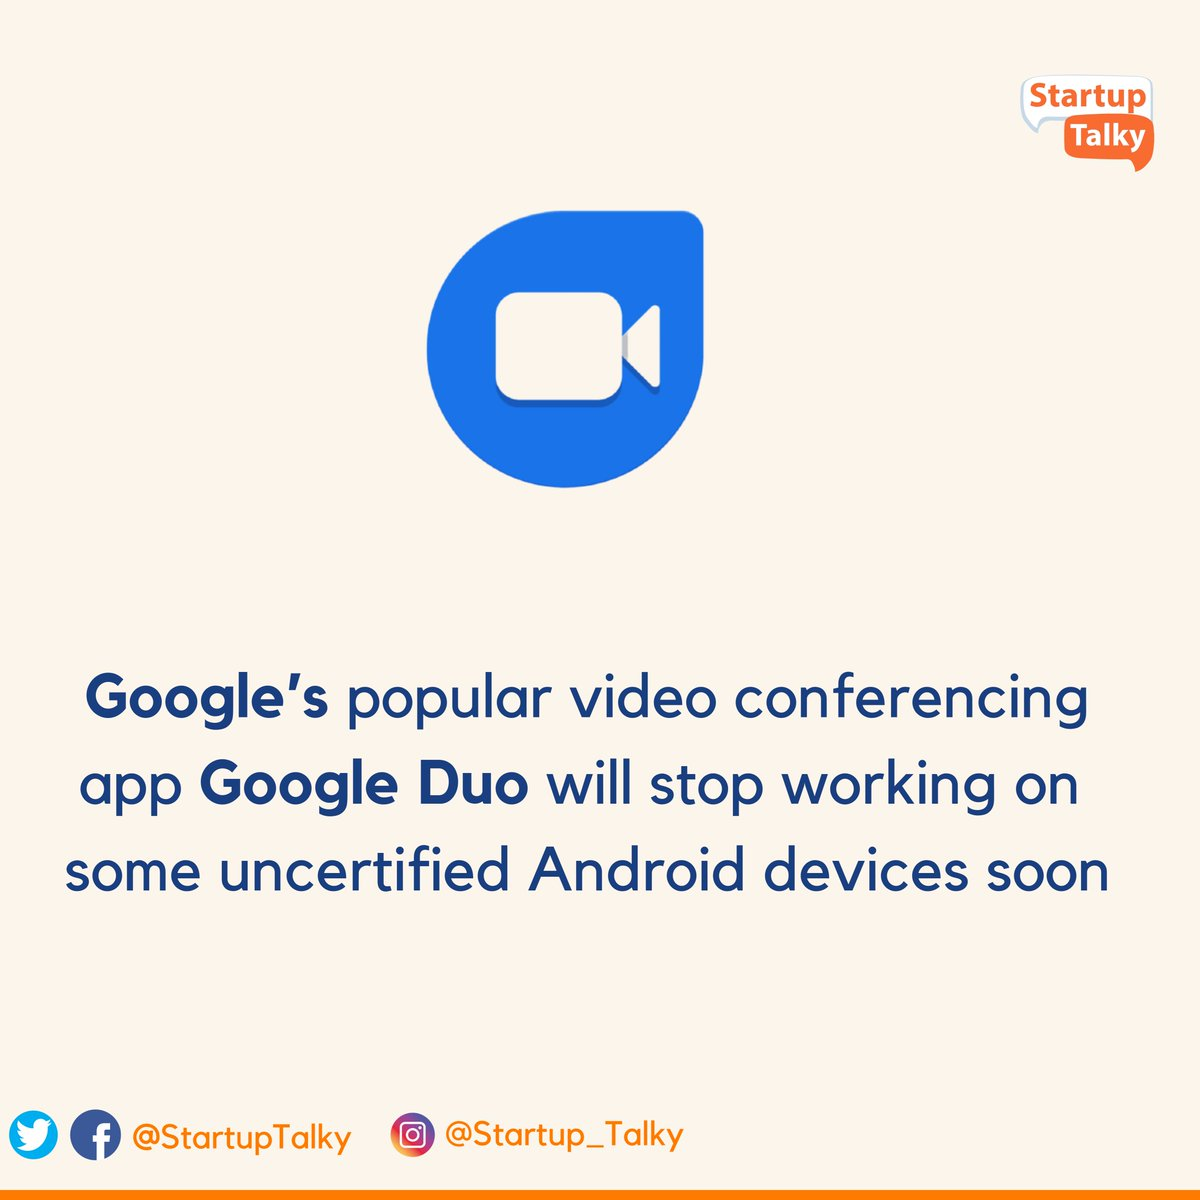 An uncertified Android device is one that does not follow Google certification process and does not have Google G suite apps pre-installed on it. Google Messages will also stop working on uncertified Android devices.  #googleduo #uncertified #android #shutdown